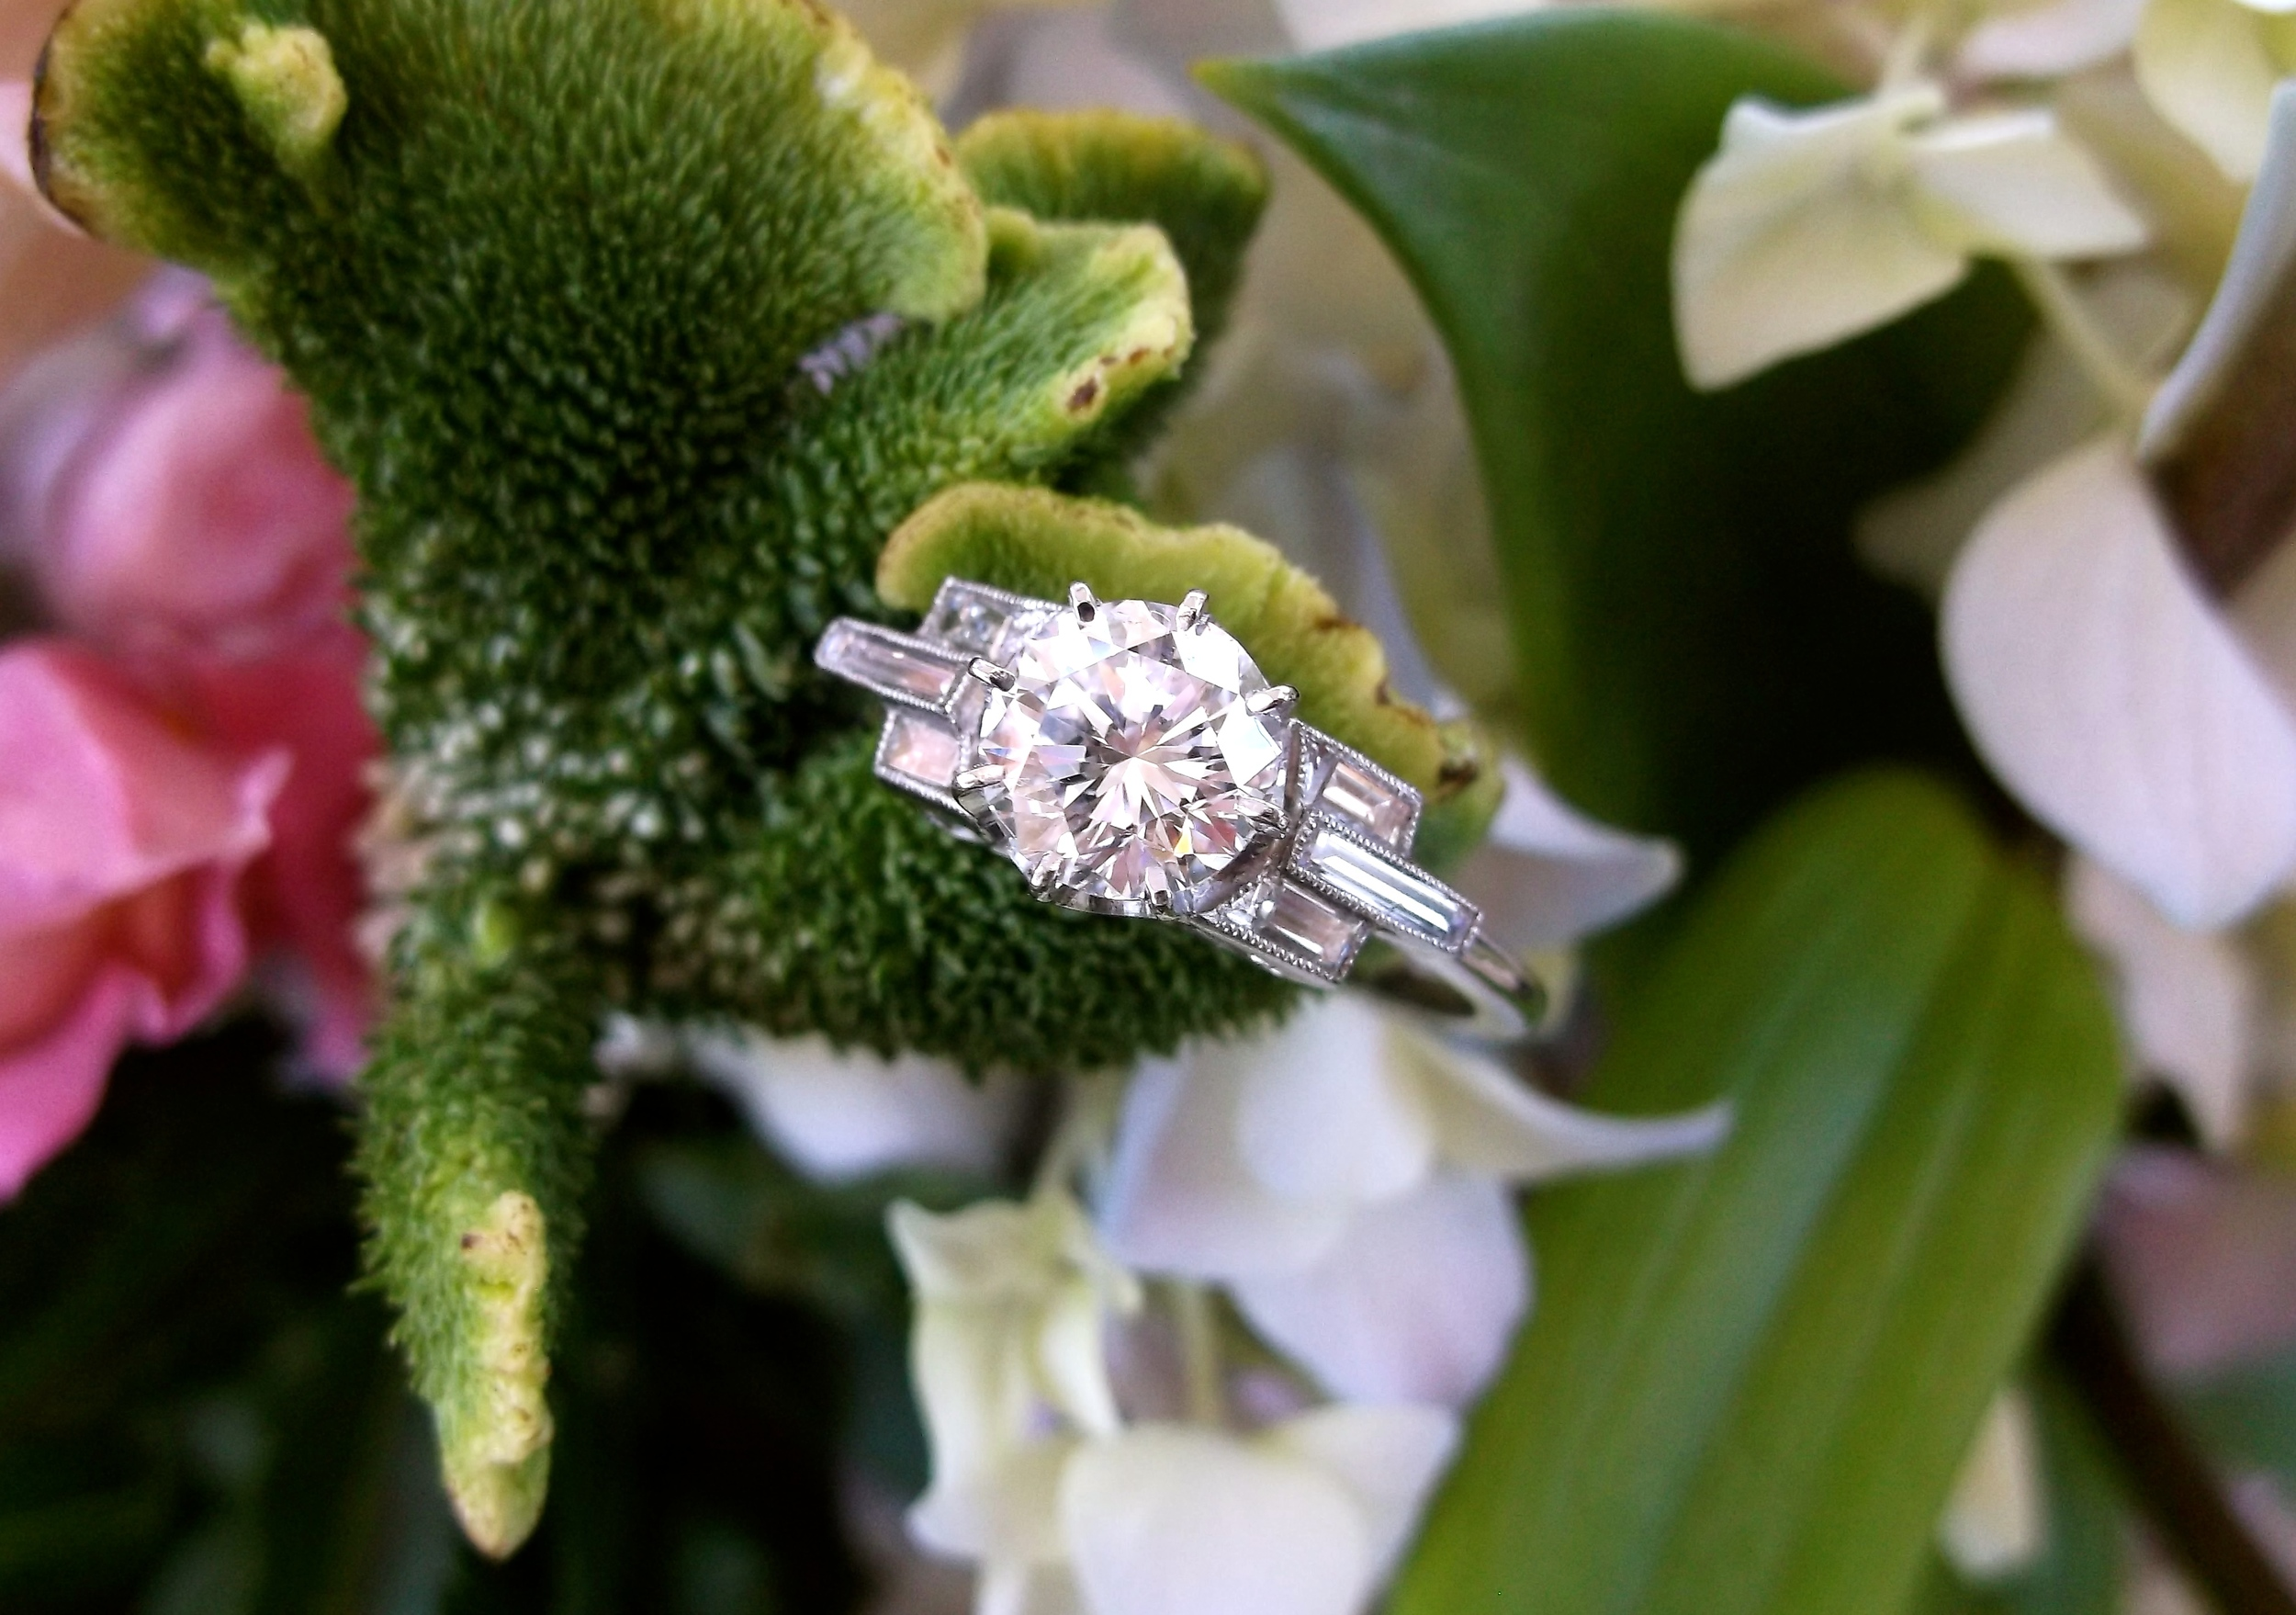 SOLD - Beautifully architectural 1.03 carat diamond ring with baguette diamond detail set in platinum.